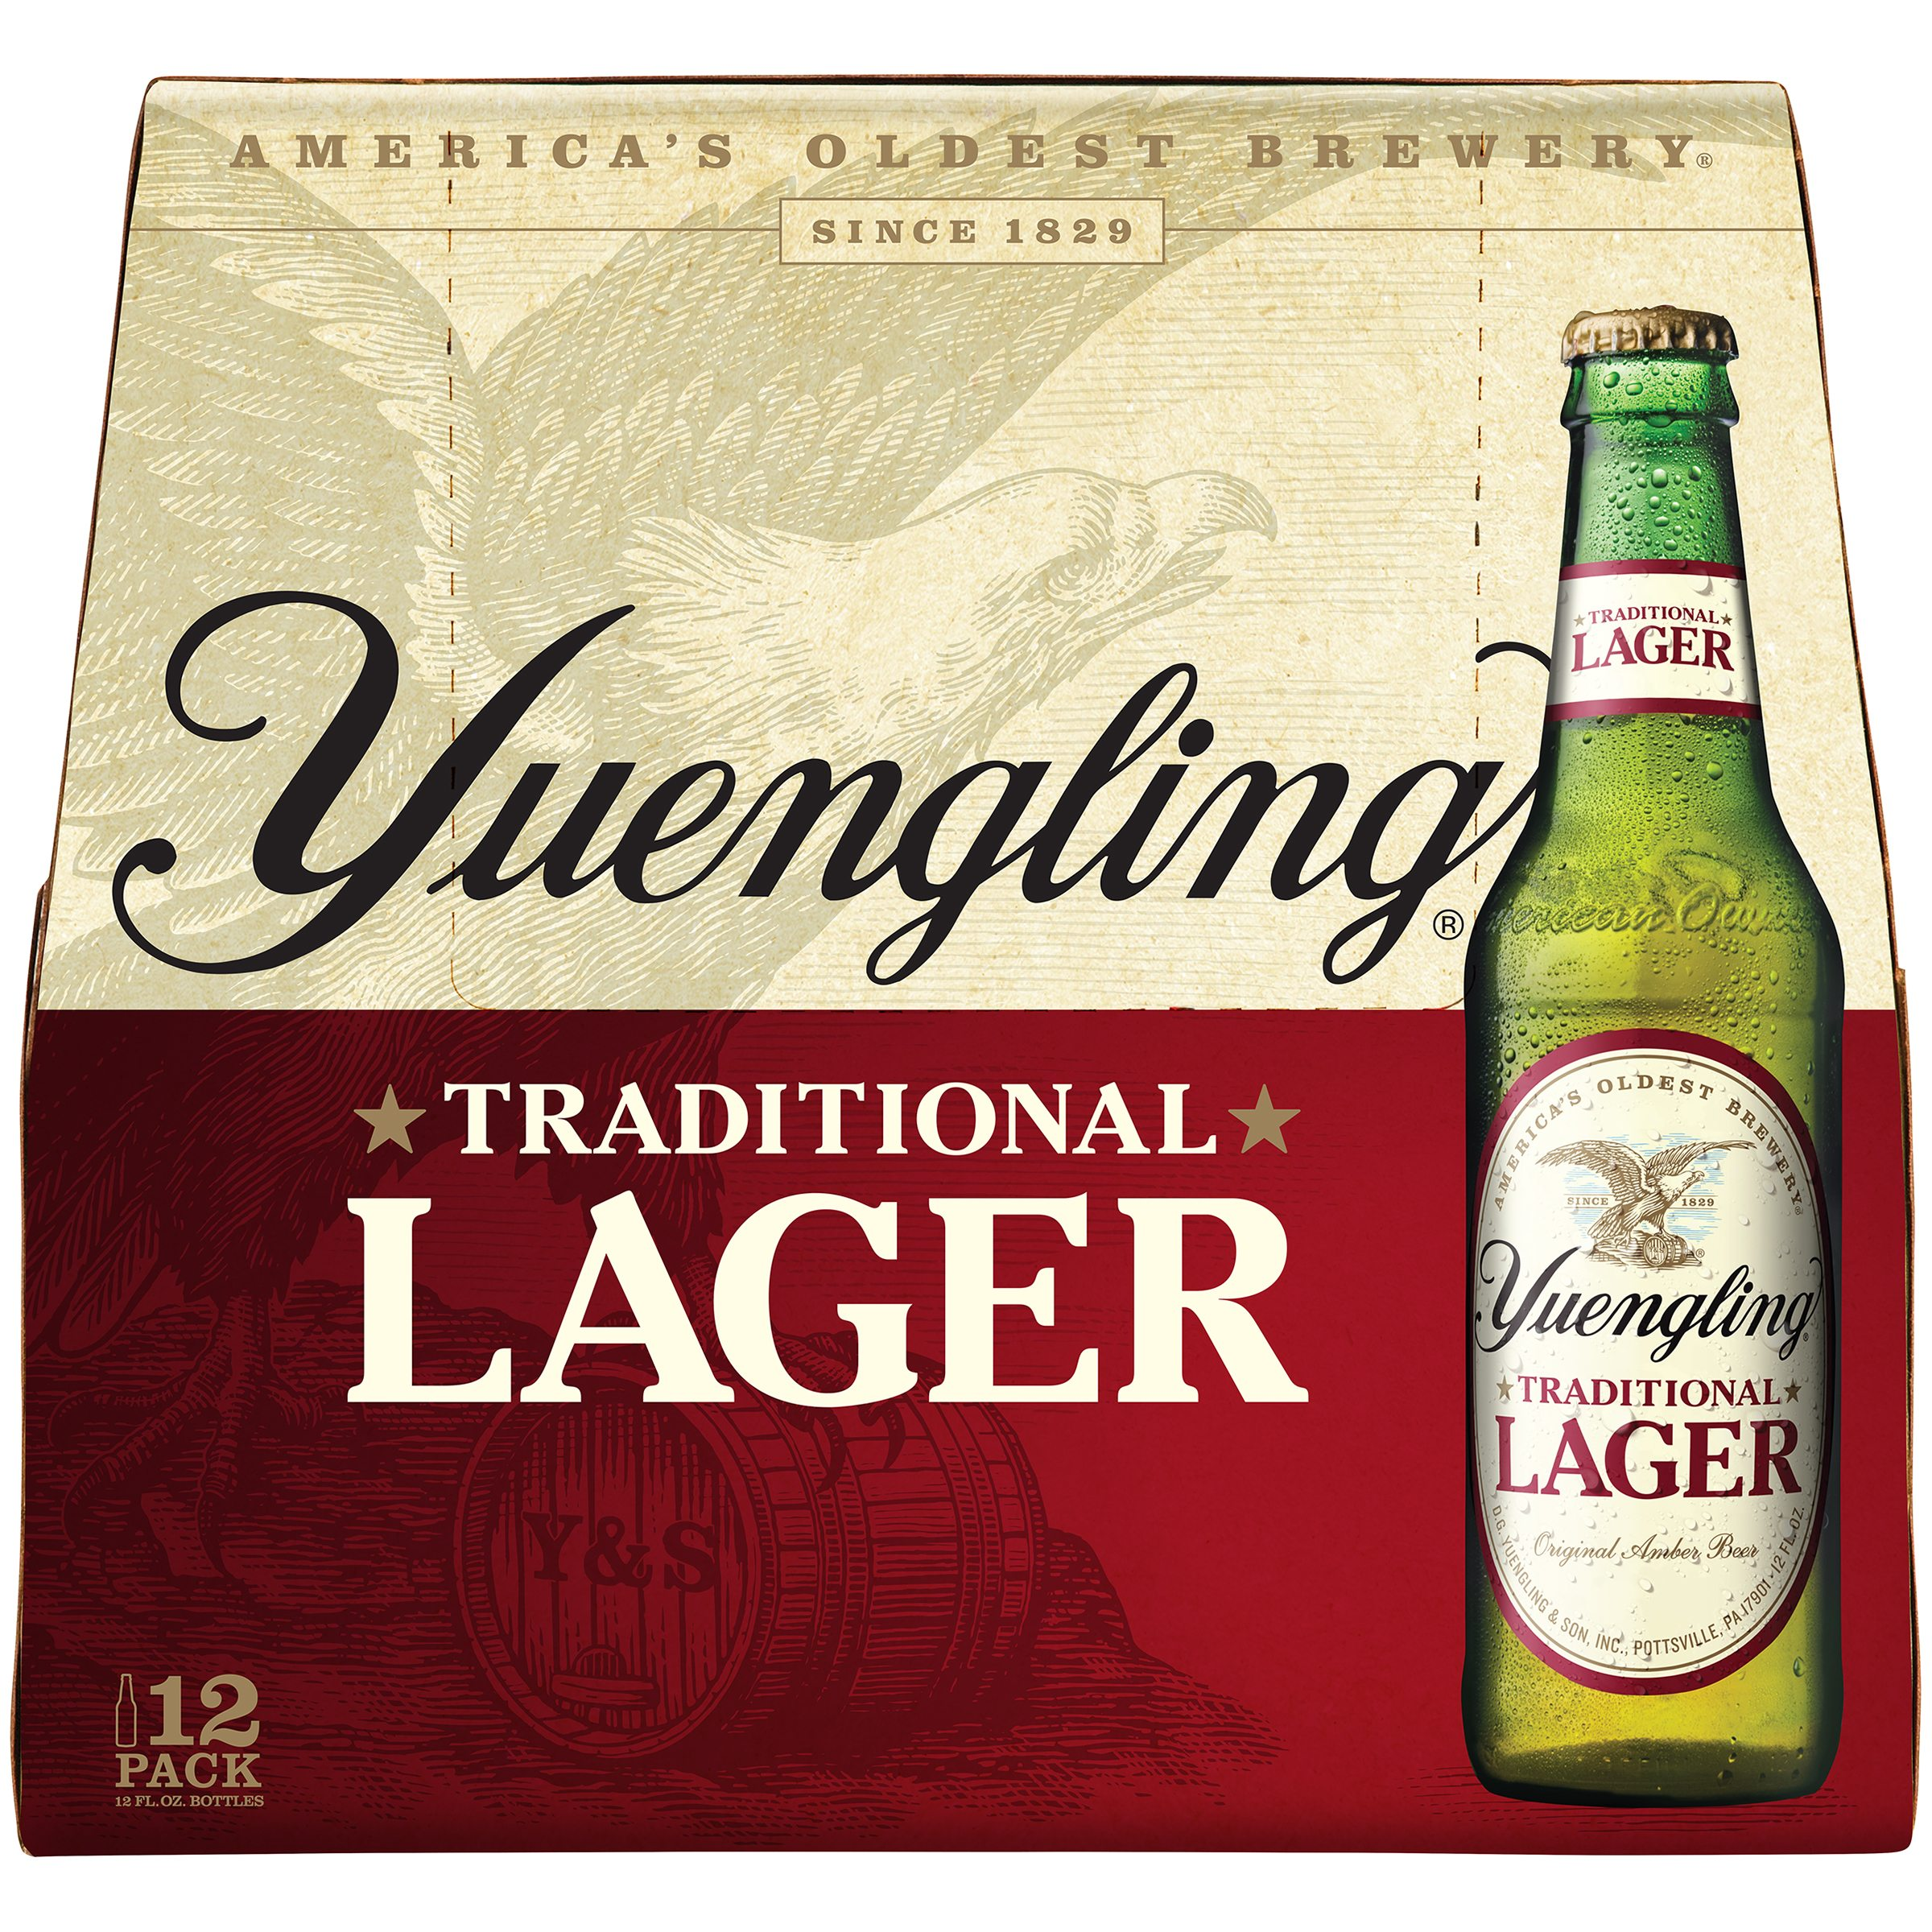 Yuengling Lager 12pk Bottles & Cans - Save $1.00